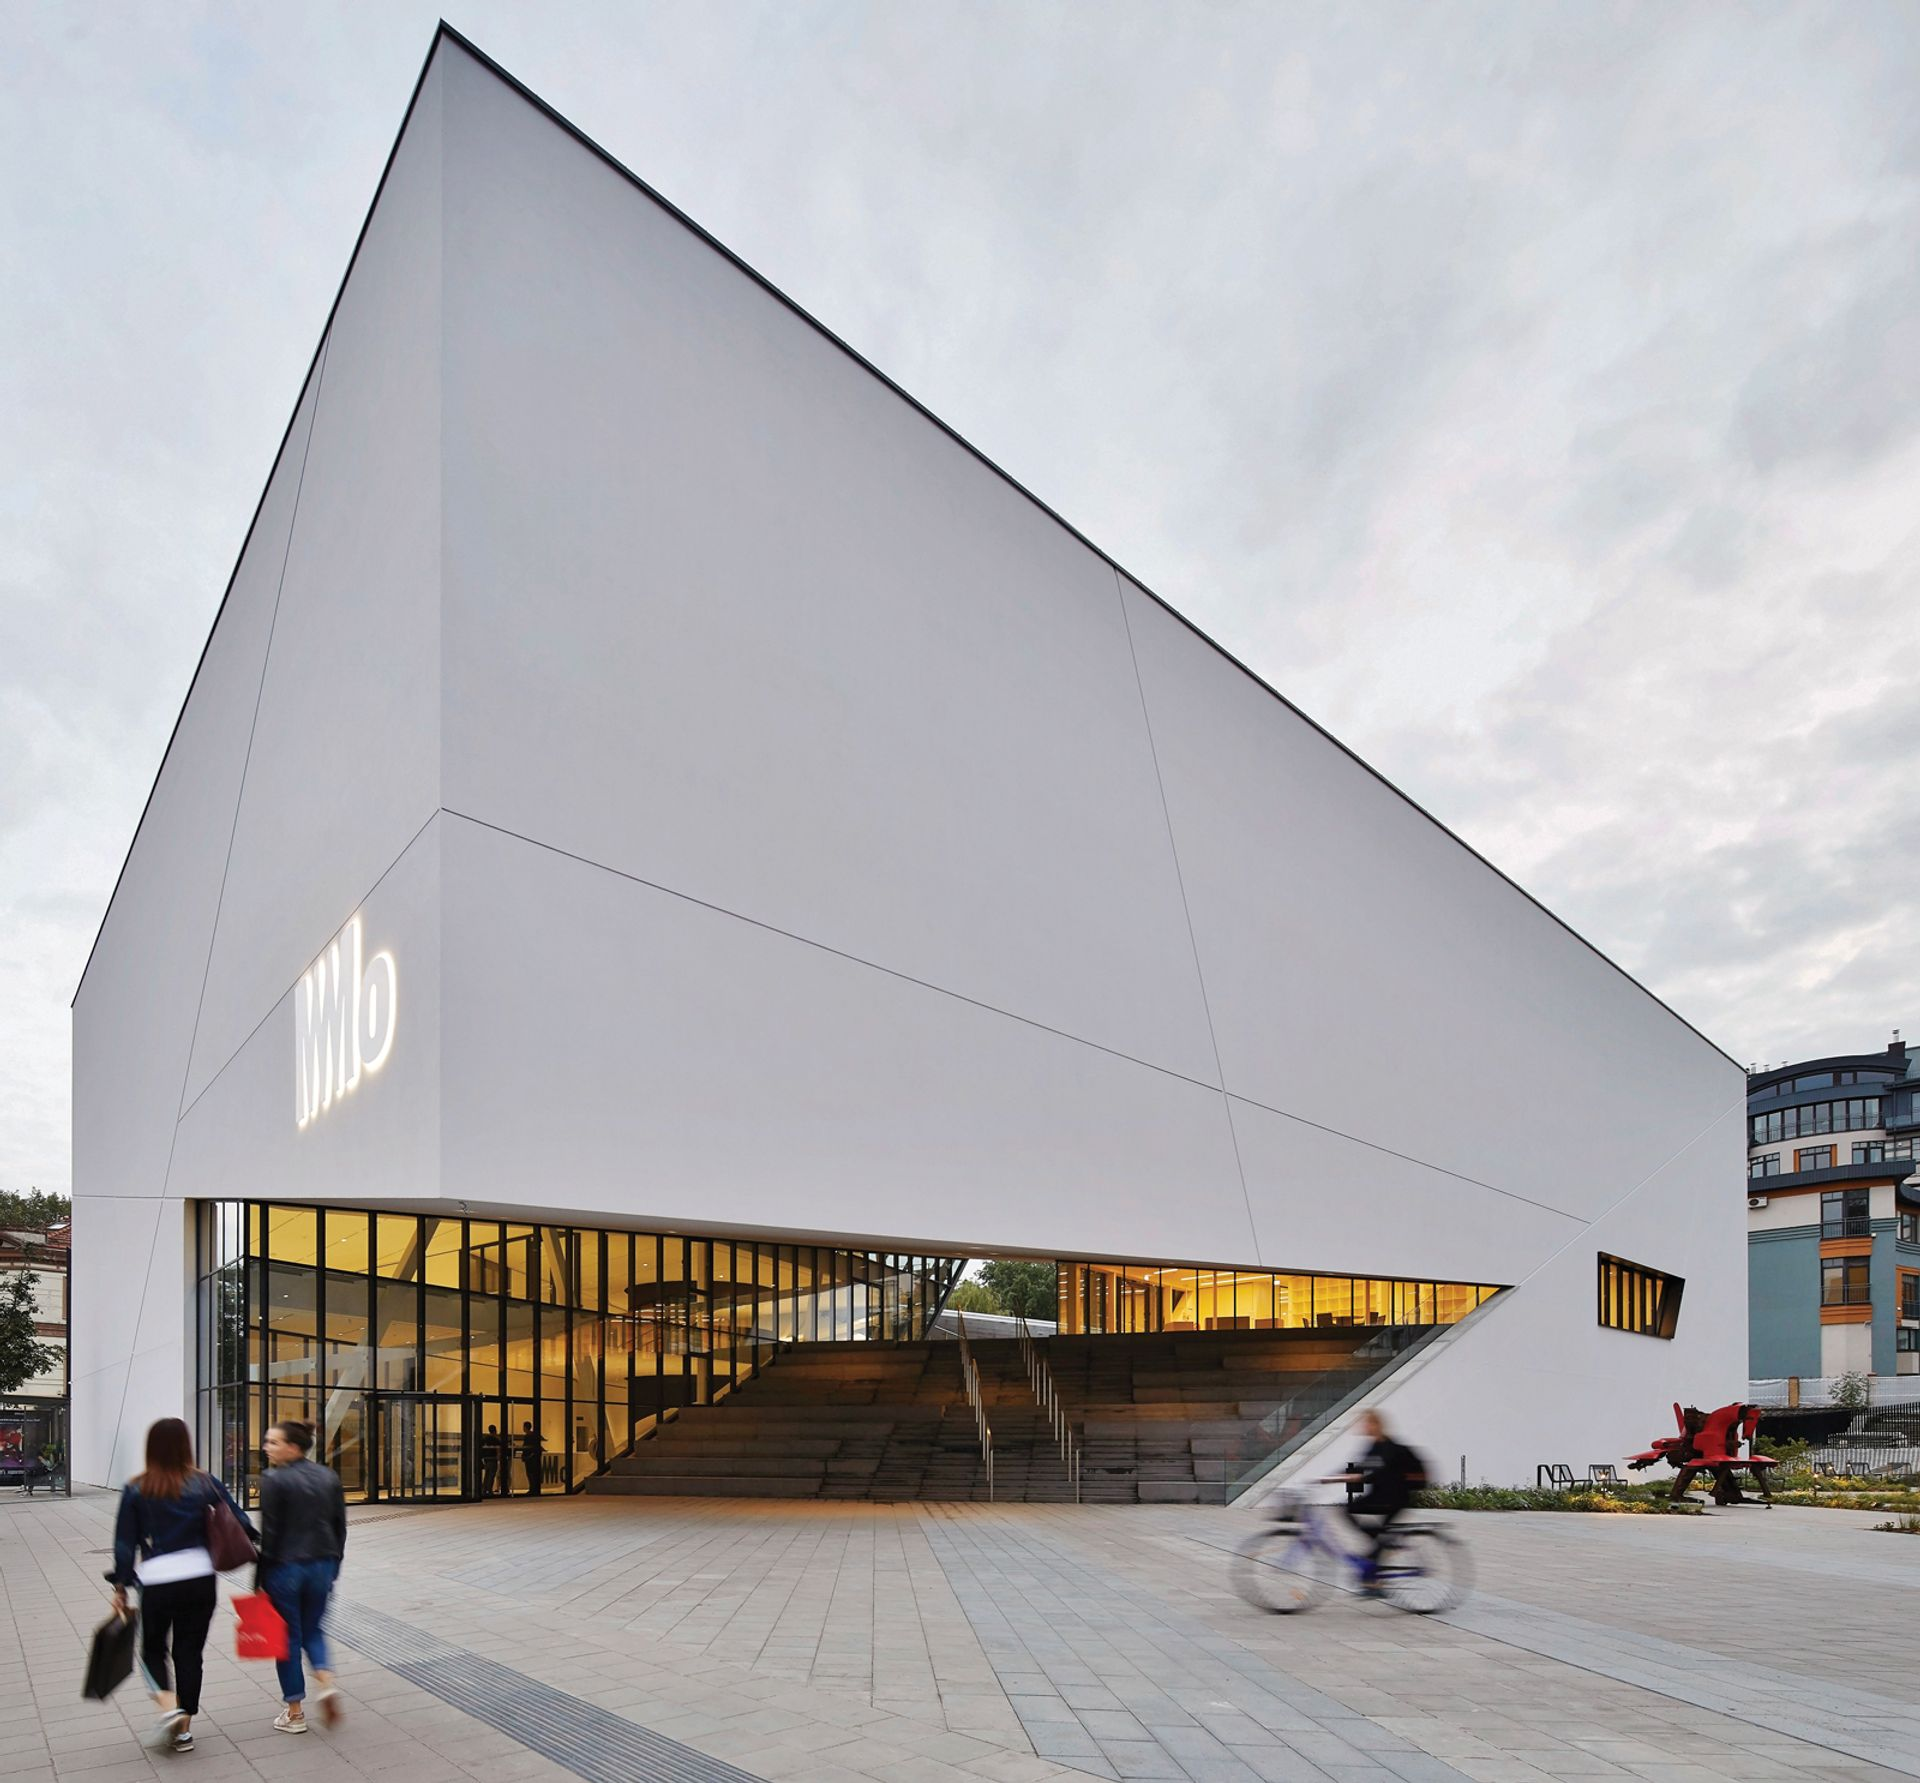 The €15m MO Museum was designed by Daniel Libeskind © Hufton + Crow